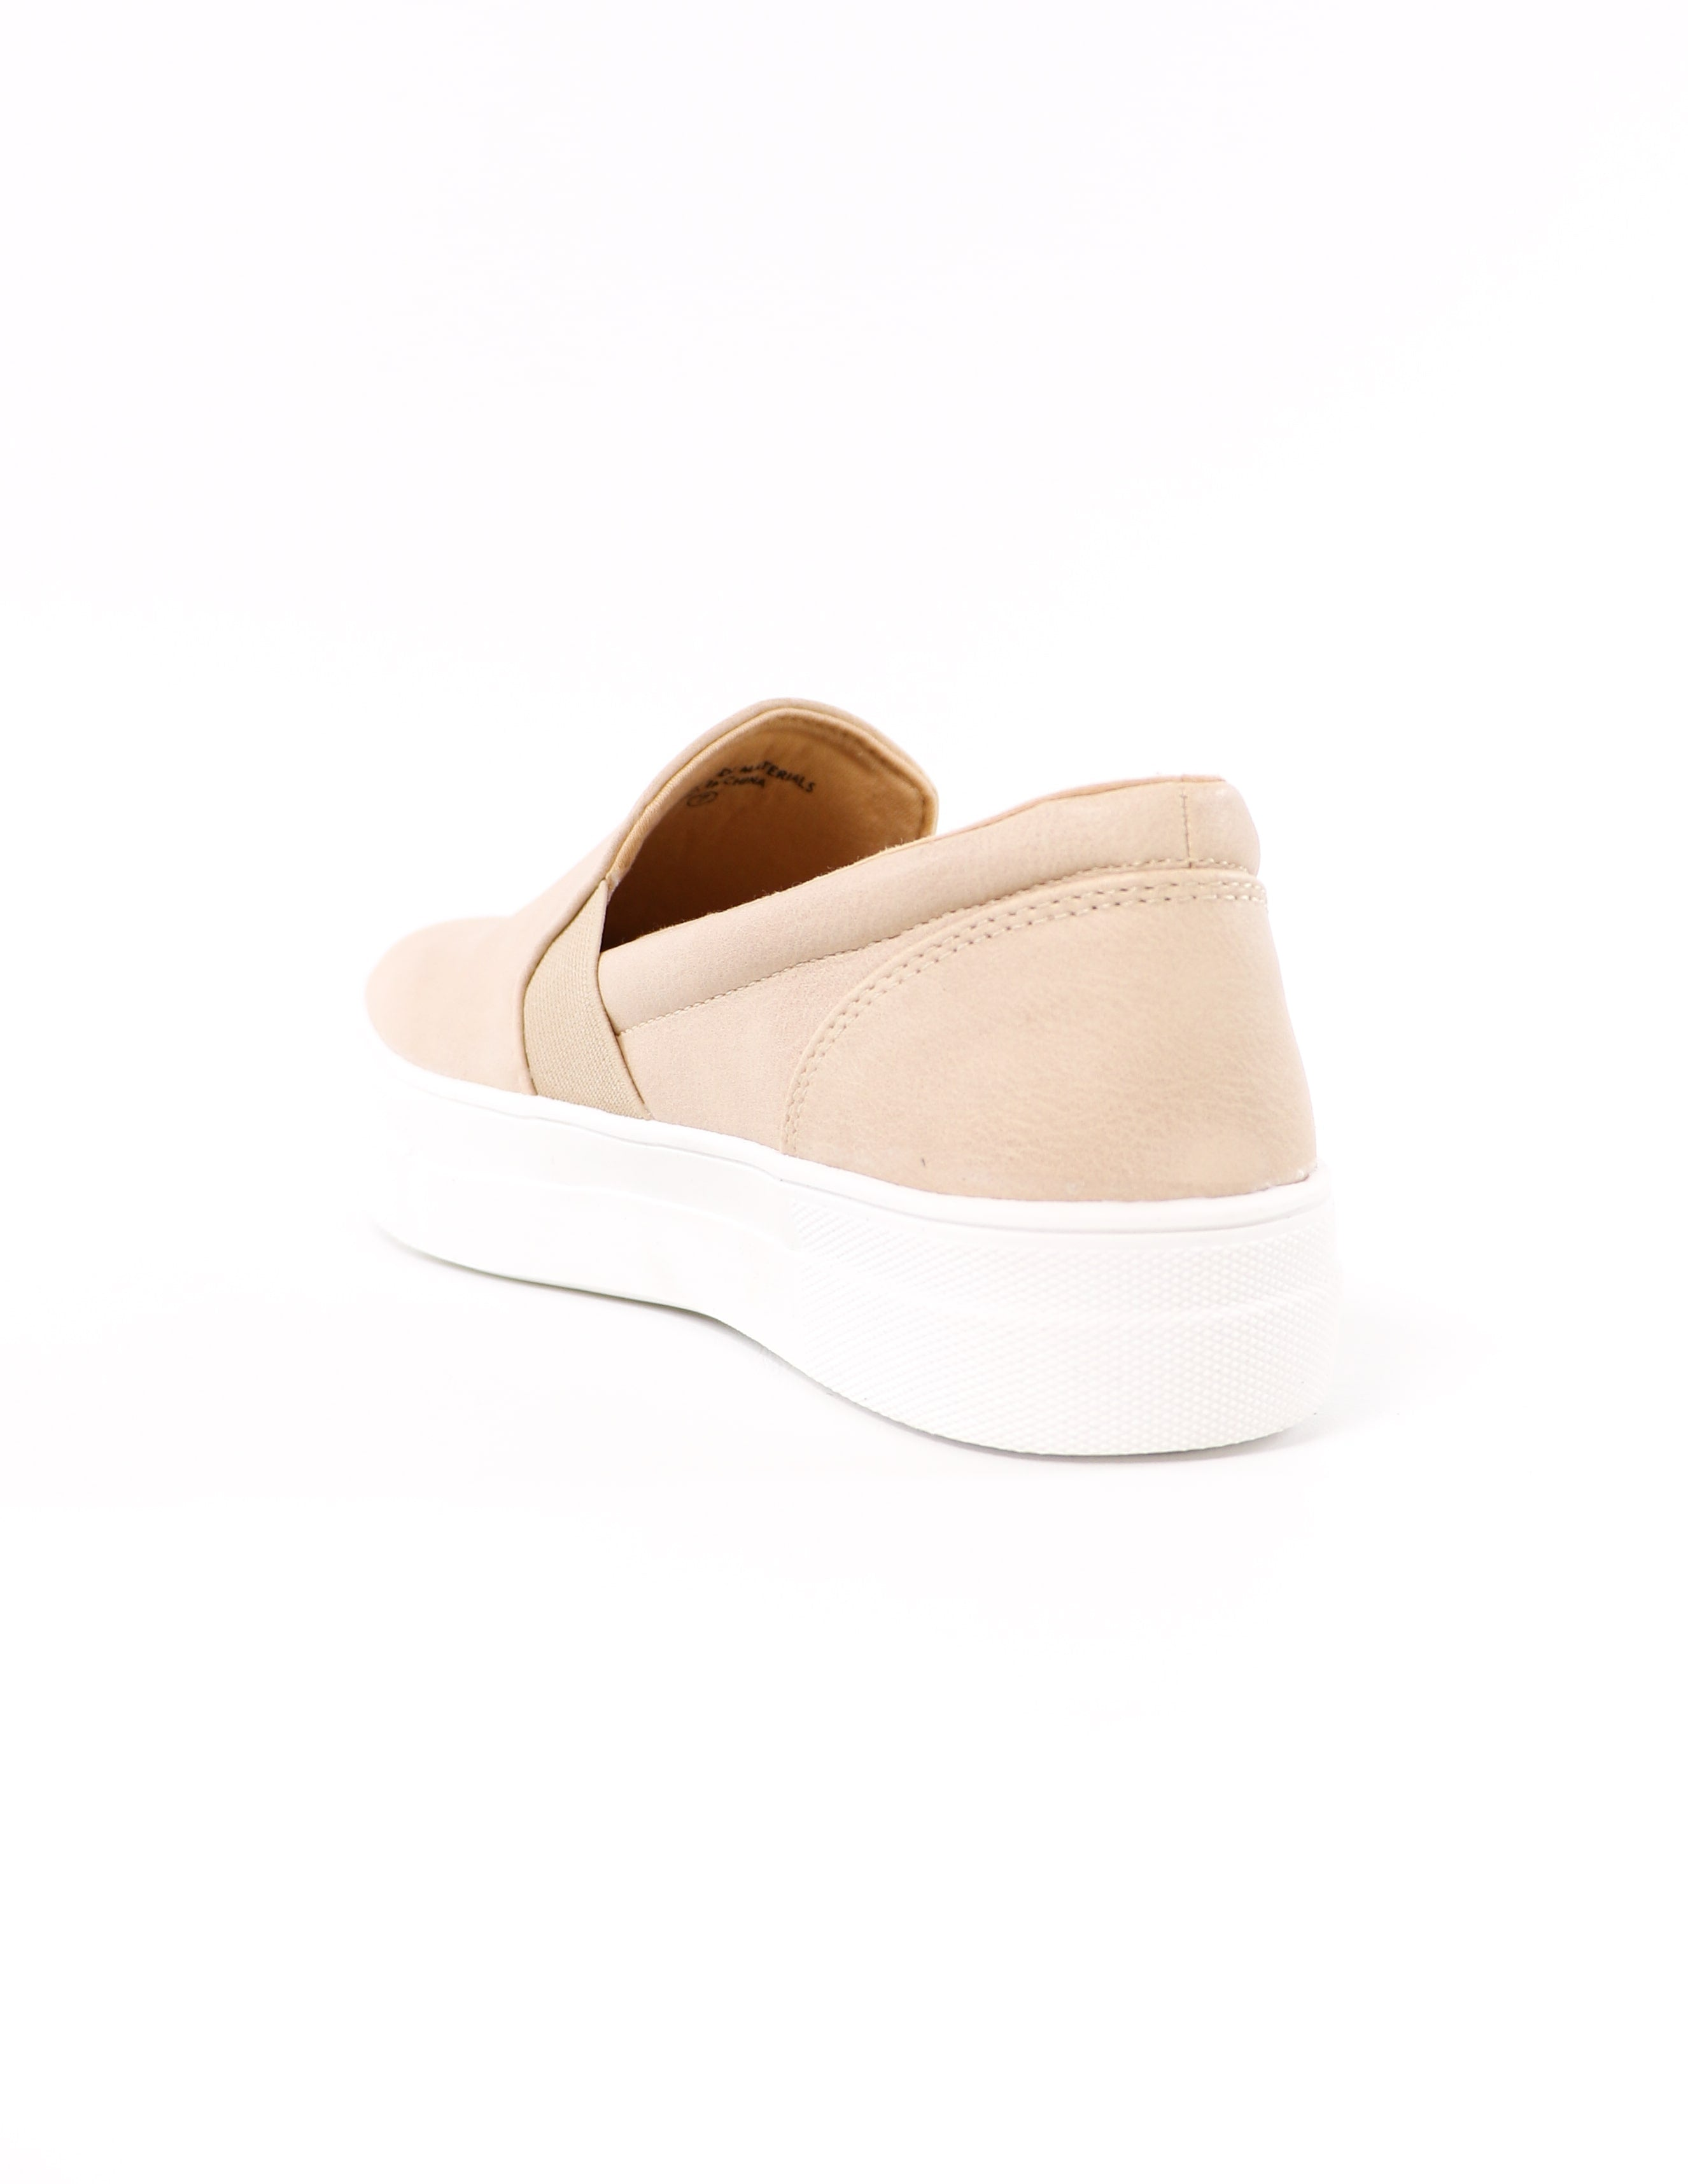 back of the natural kickin' it sole-o slip on sneaker - elle bleu shoes